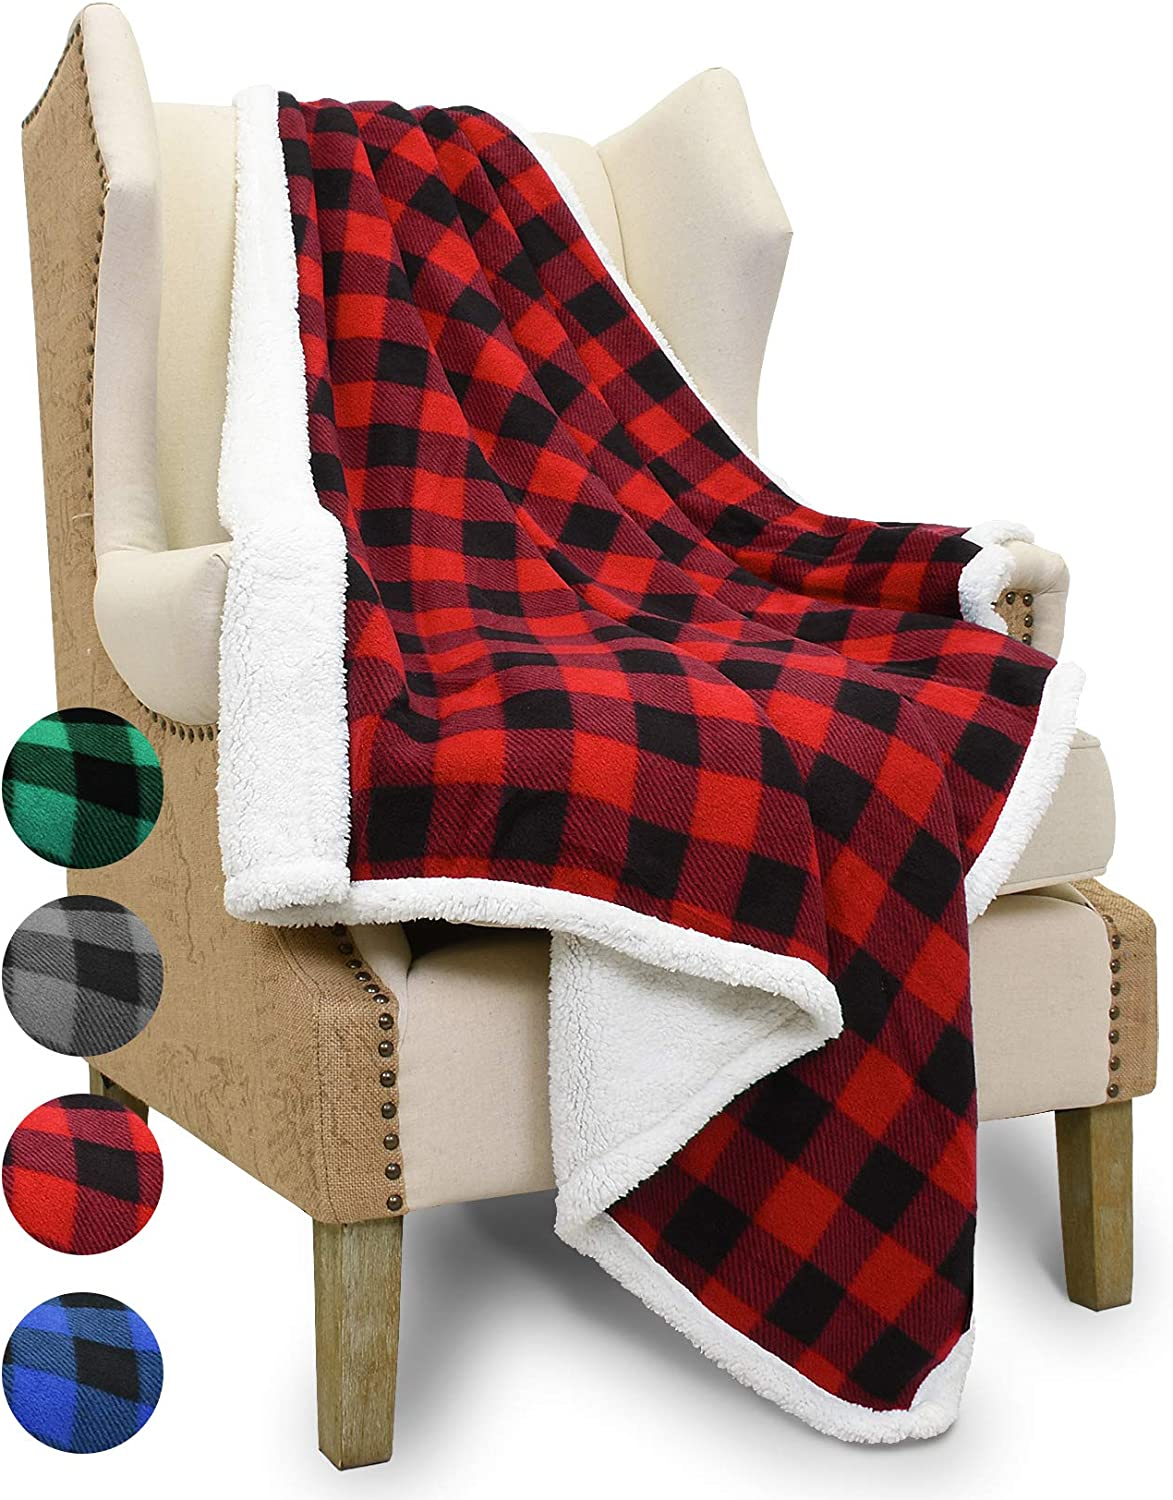 Catalonia Buffalo Plaid Sherpa Throw Blanket,Micro Fleece Plush Throws for Bed Couch TV|Reversible,Super Soft,Warm,Comfy,Fuzzy,Snuggle|60x50 Inches,Red Black Checkered